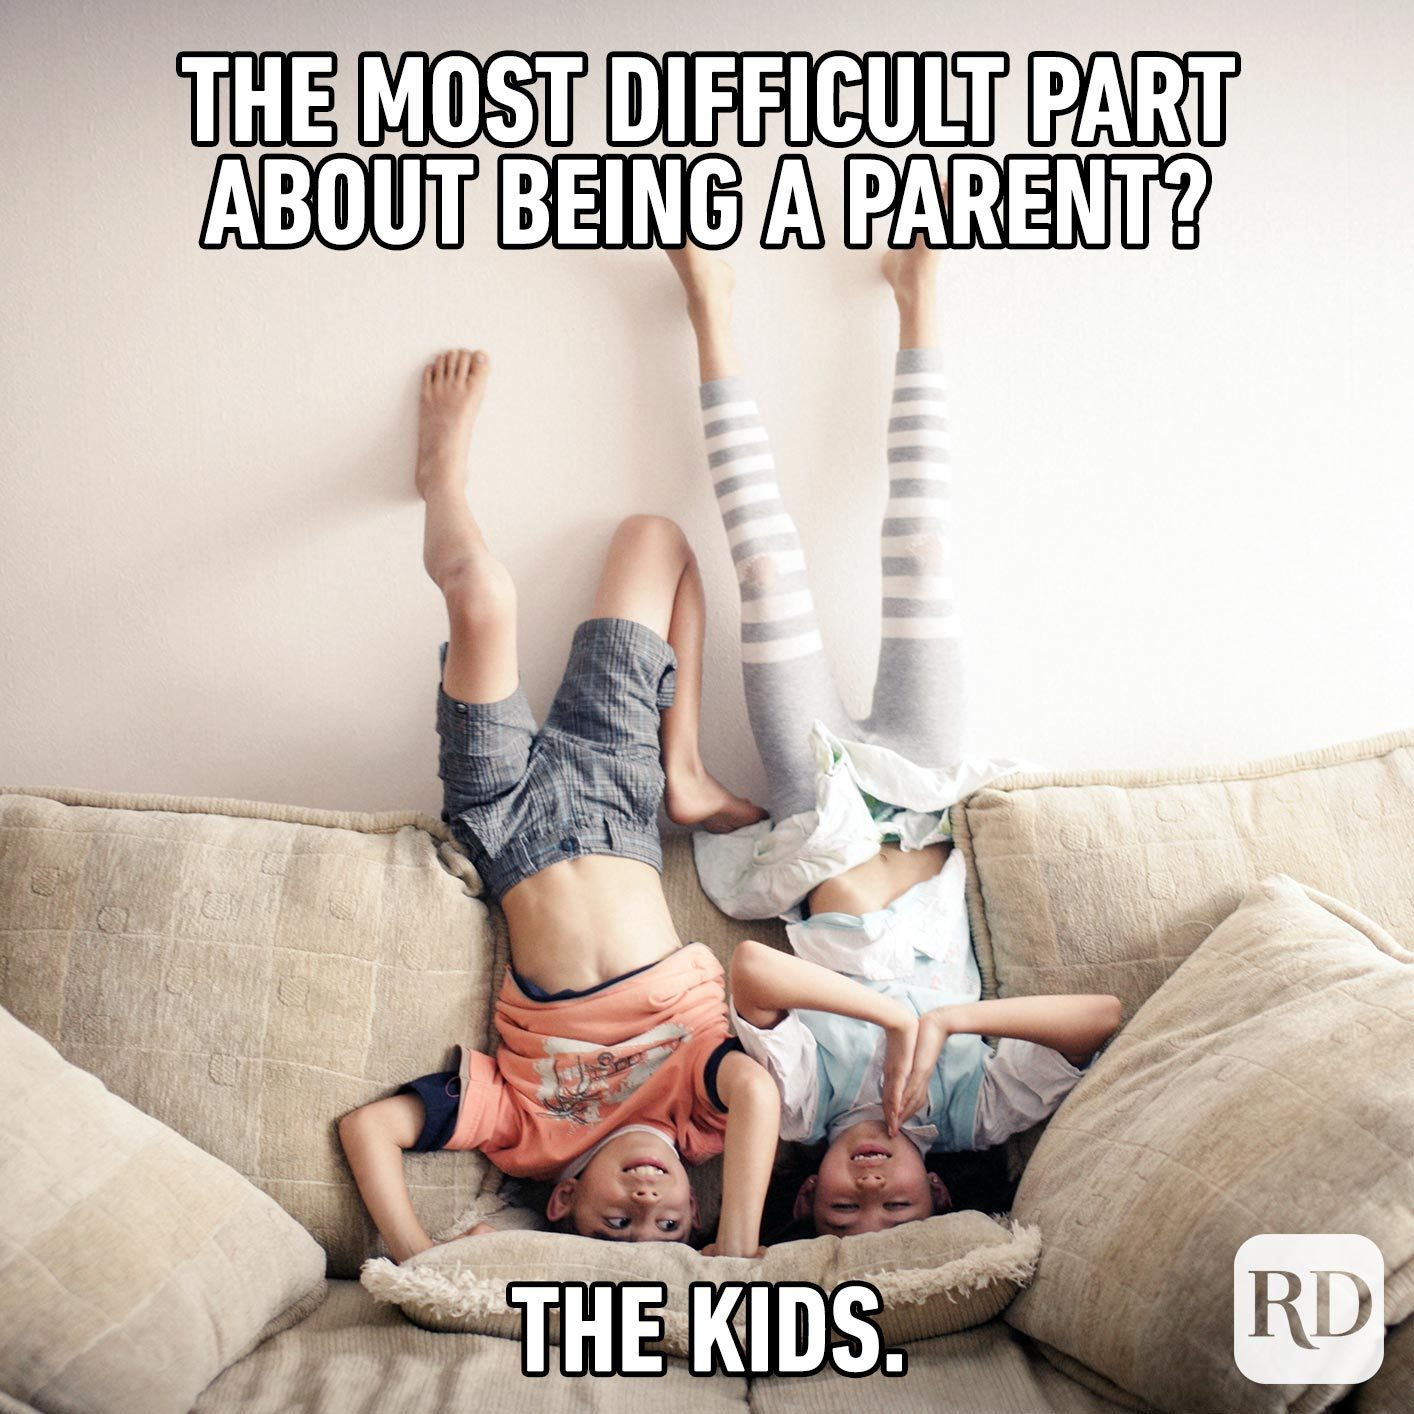 Two kids standing on their heads on a couch. MEME TEXT: The most difficult thing about being a parent? The kids